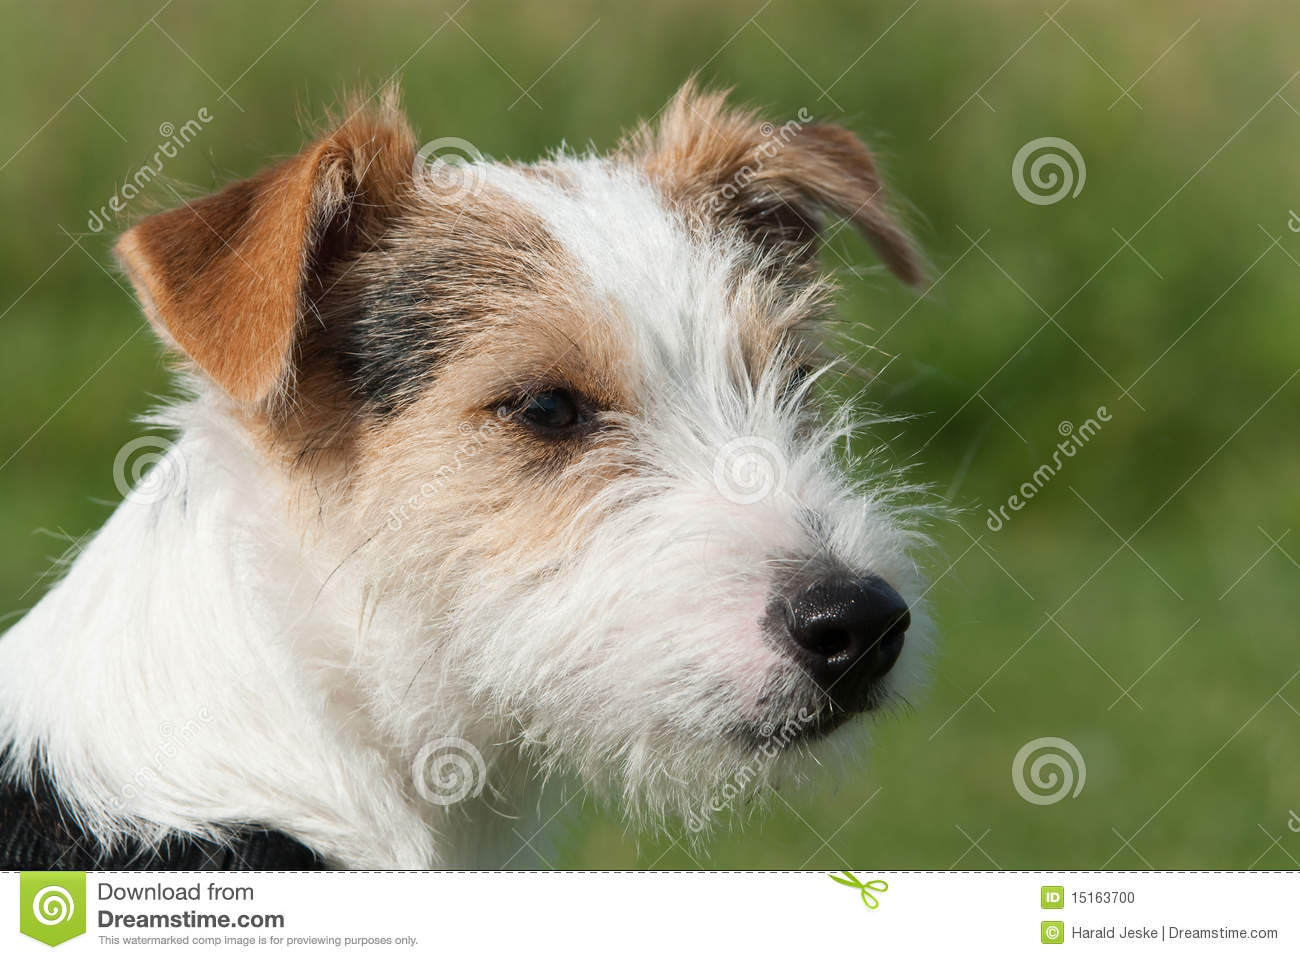 Parson Jack Russell Terrier Stock Photo - Image: 15163700